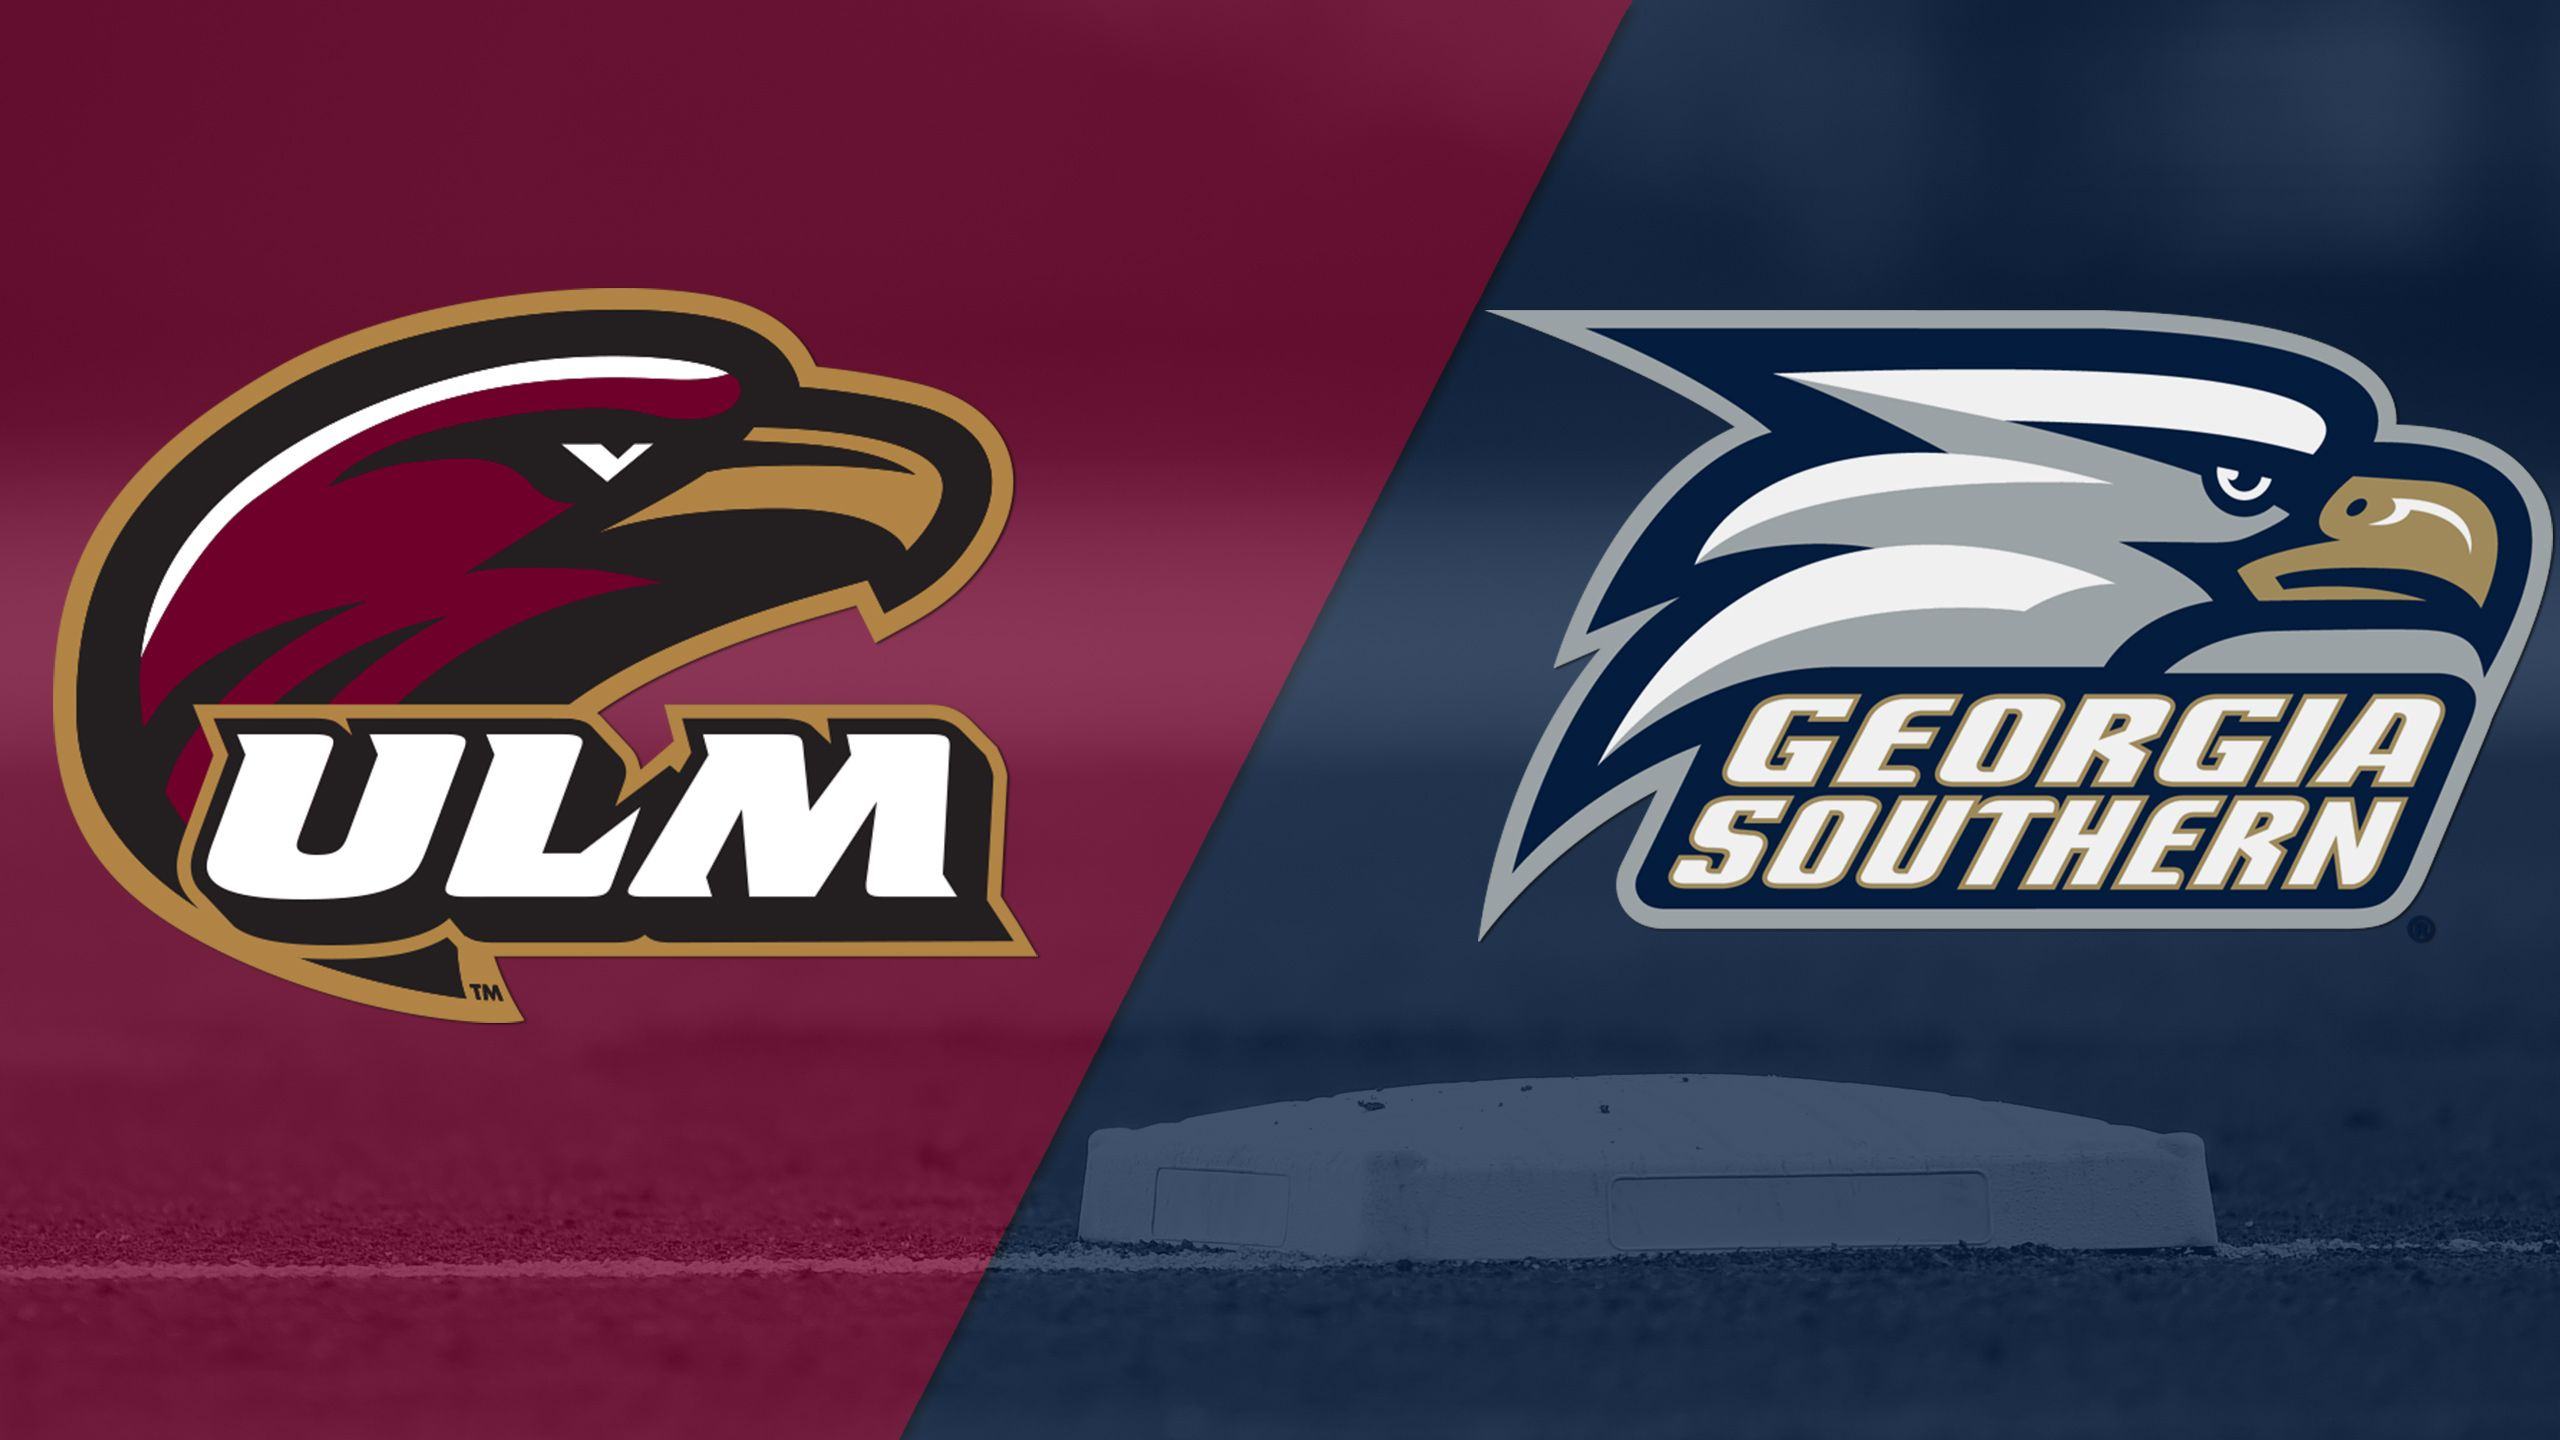 UL Monroe vs. Georgia Southern (Game #2) (Sun Belt Softball Championship)